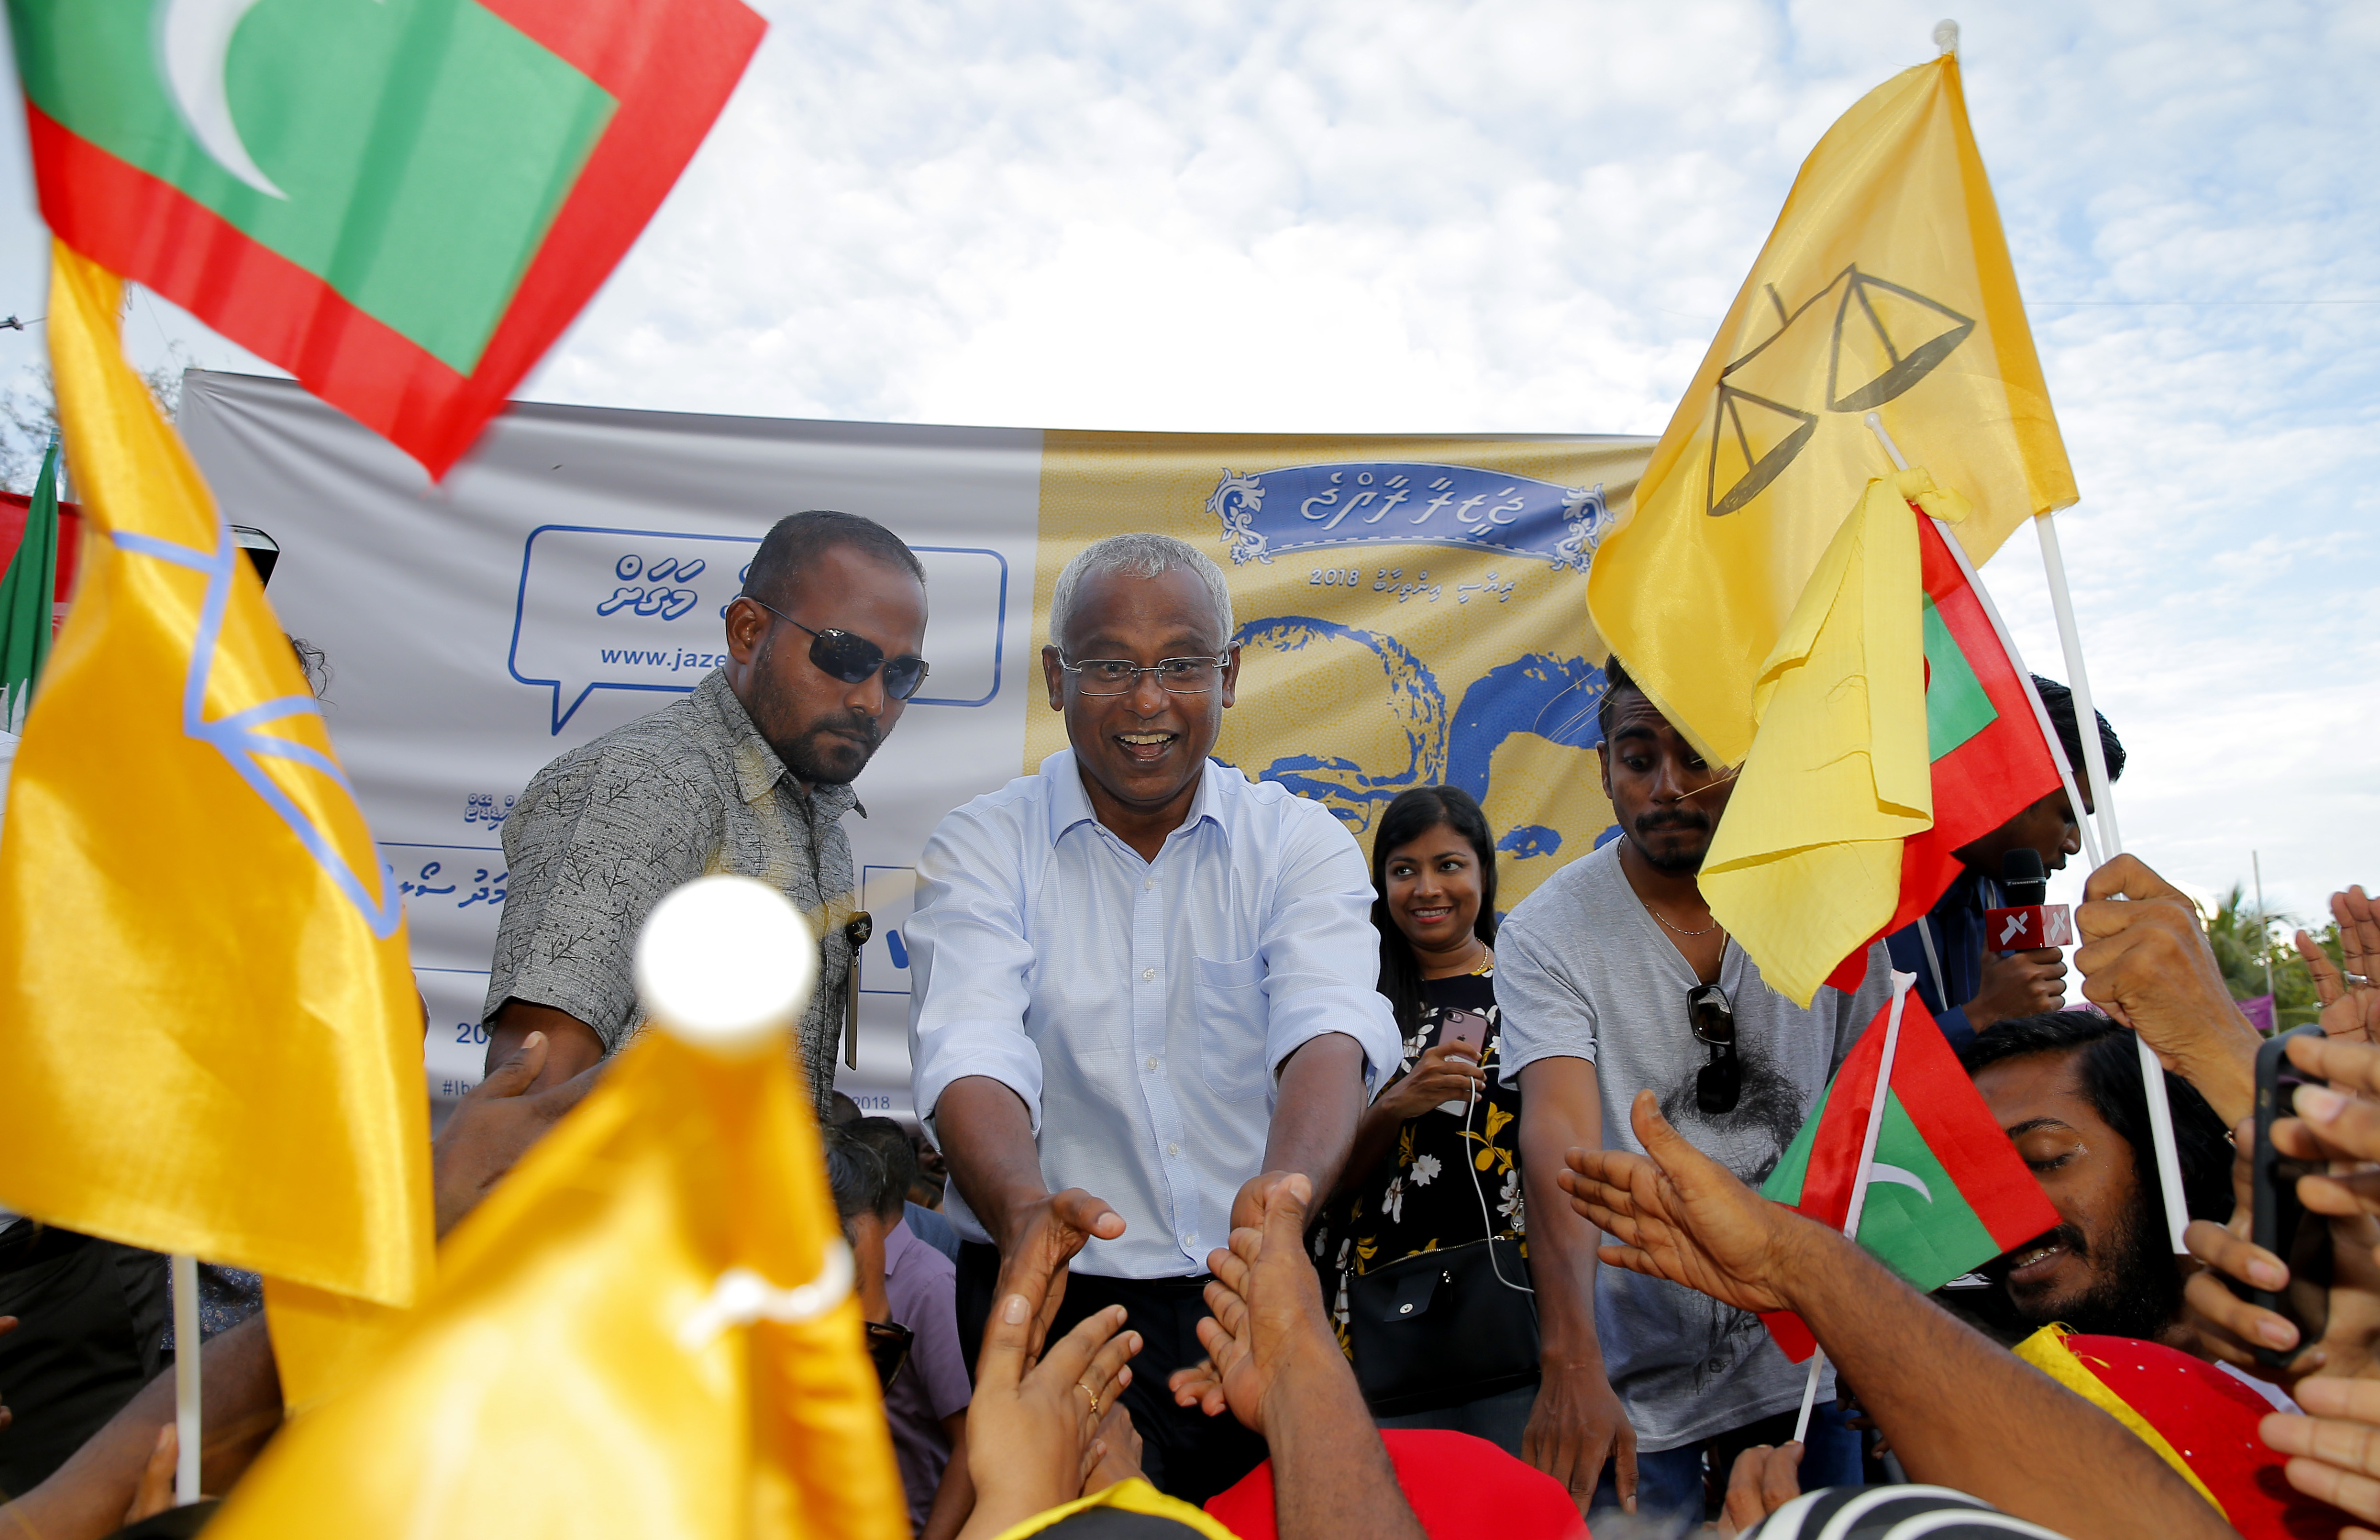 Ibrahim Mohamed Solih (C), the president-elect of the Maldives, interacts with his supporters during a gathering in Male, Maldives, Sept. 24, 2018.